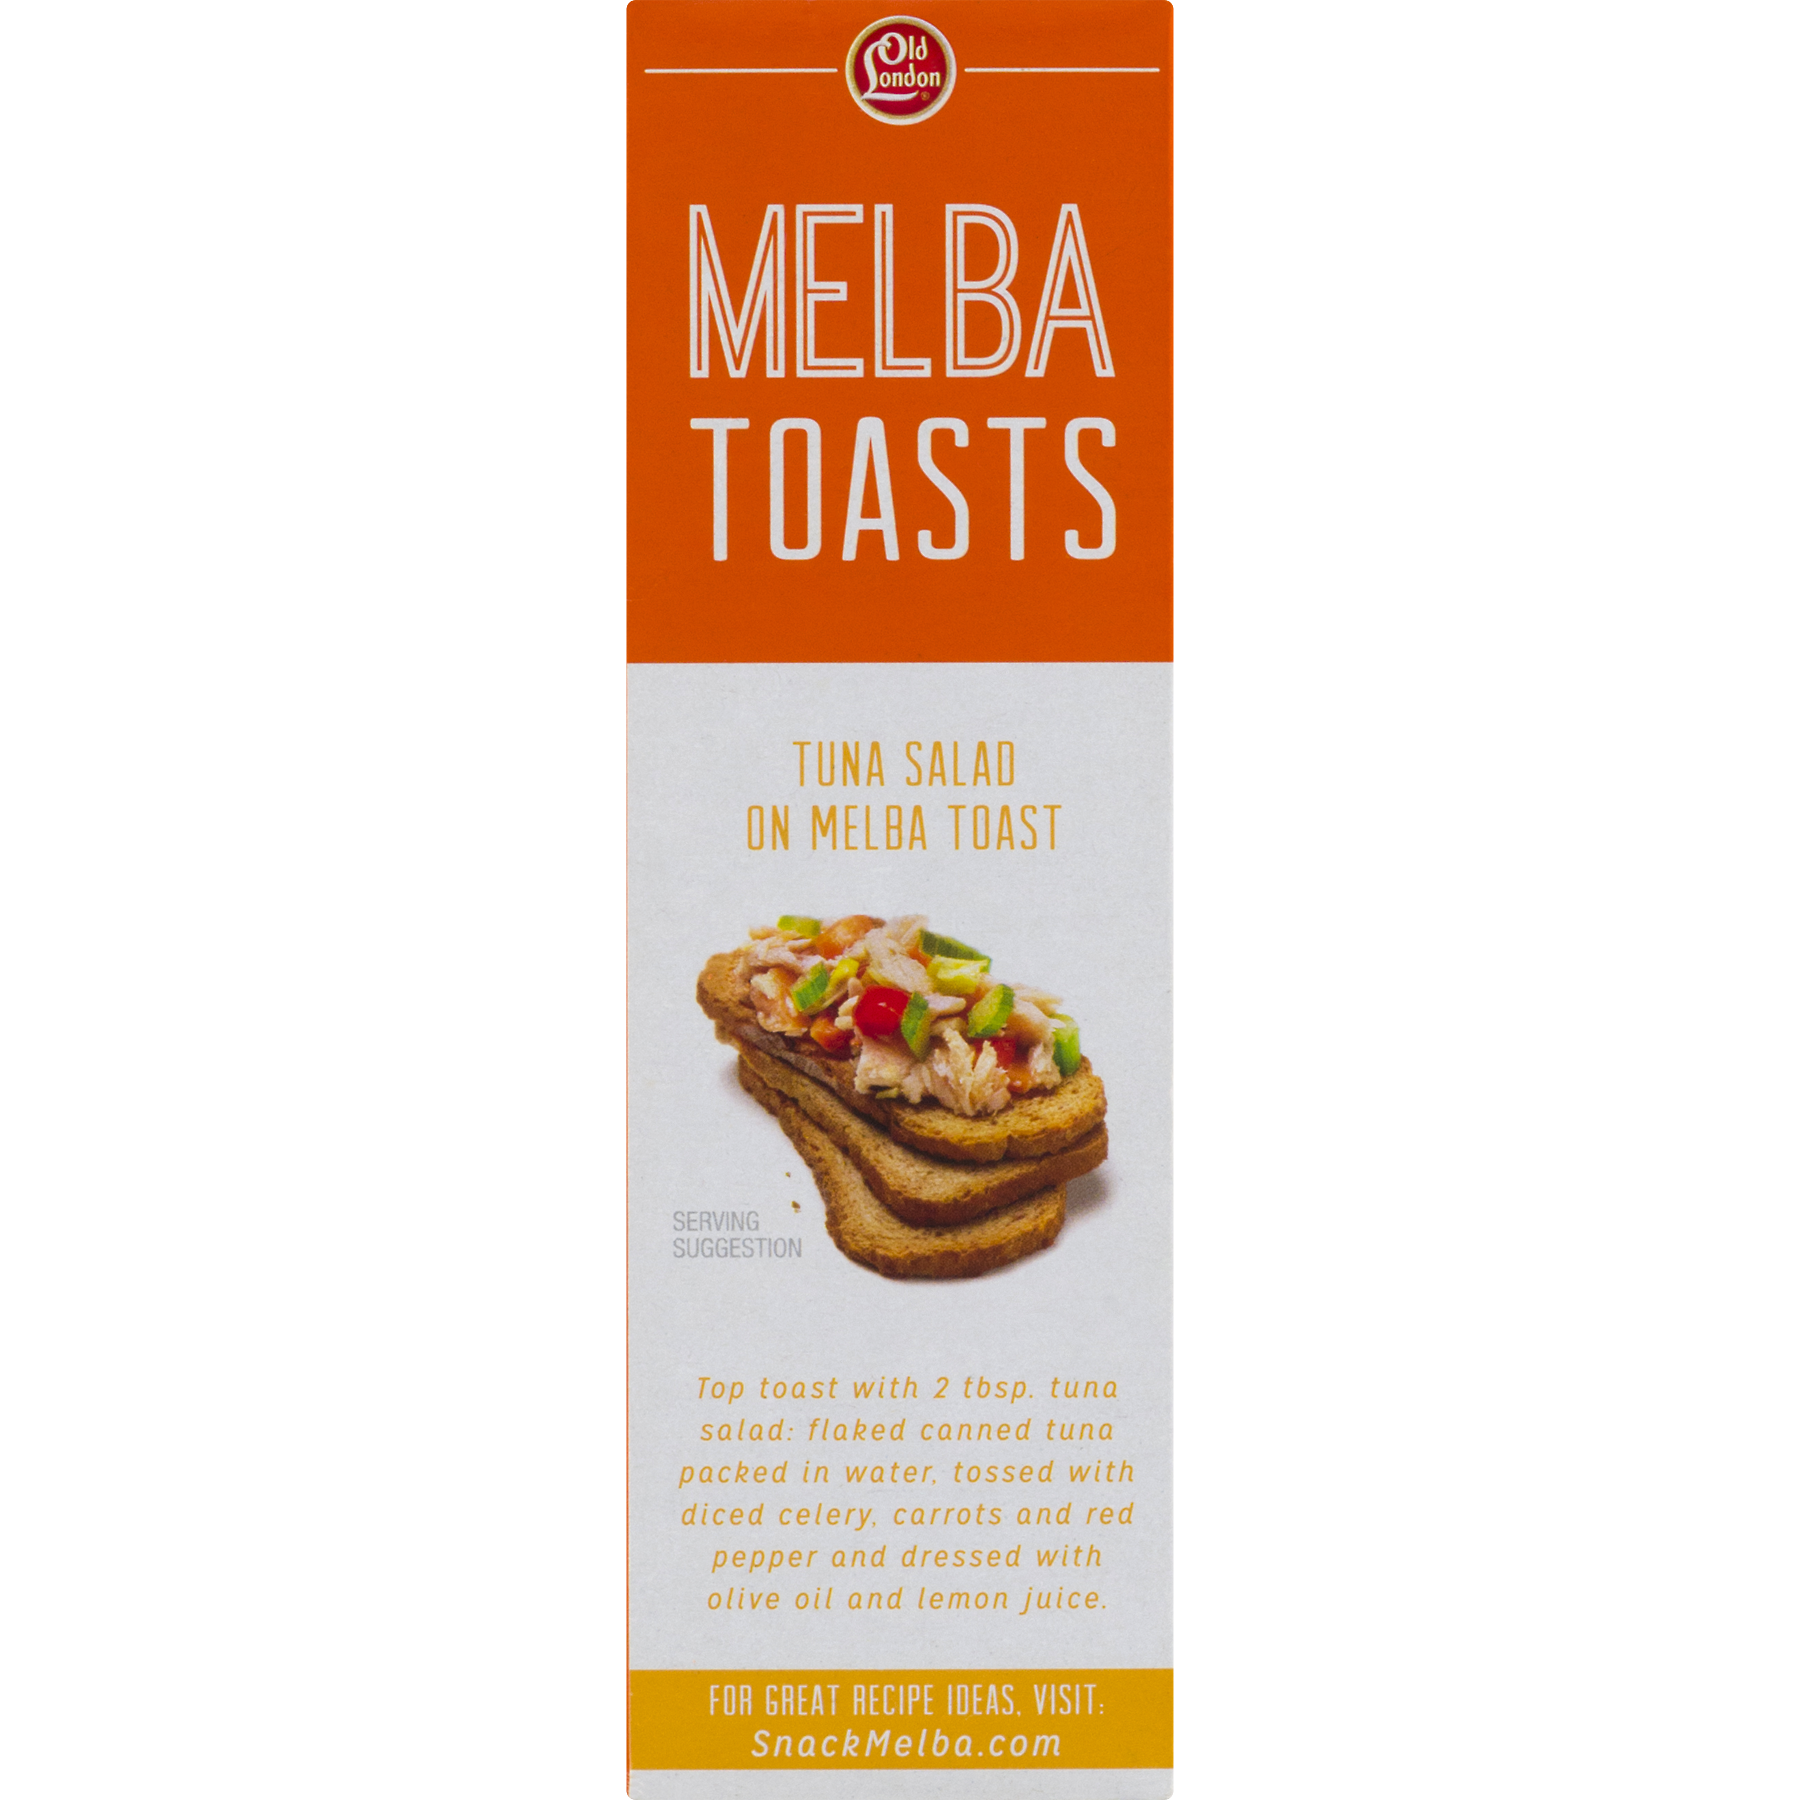 Transparent toast old. London melba wheat toasts